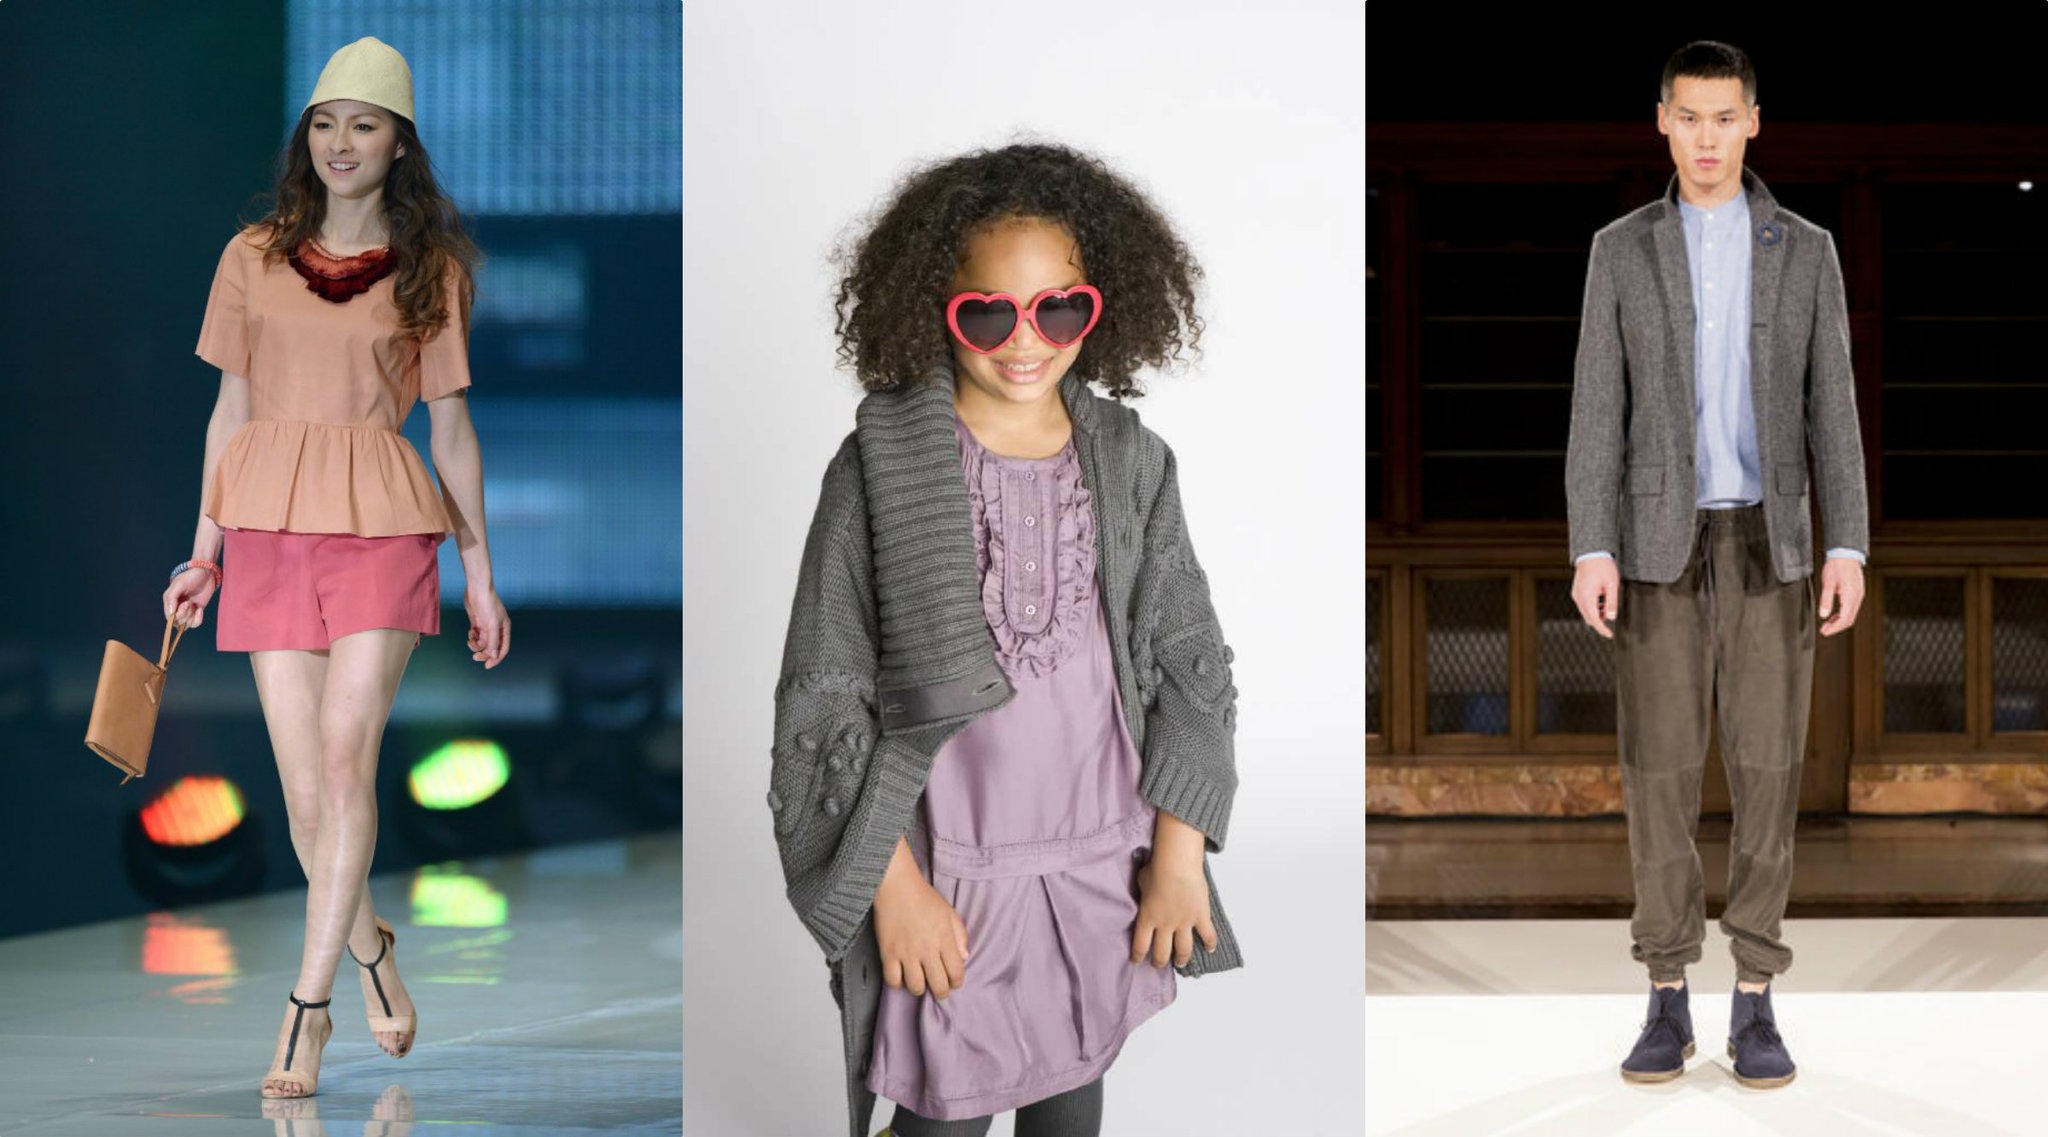 Looks from the Kate Spade, far left, and Jack Spade, far right, collections. The brands have collaborated with Gap for a kids line, following in the footsteps of designers like Diane von Furstenberg (2013) and Stella McCartney (2009, a piece from that collection is shown center) to move into childrenswear.